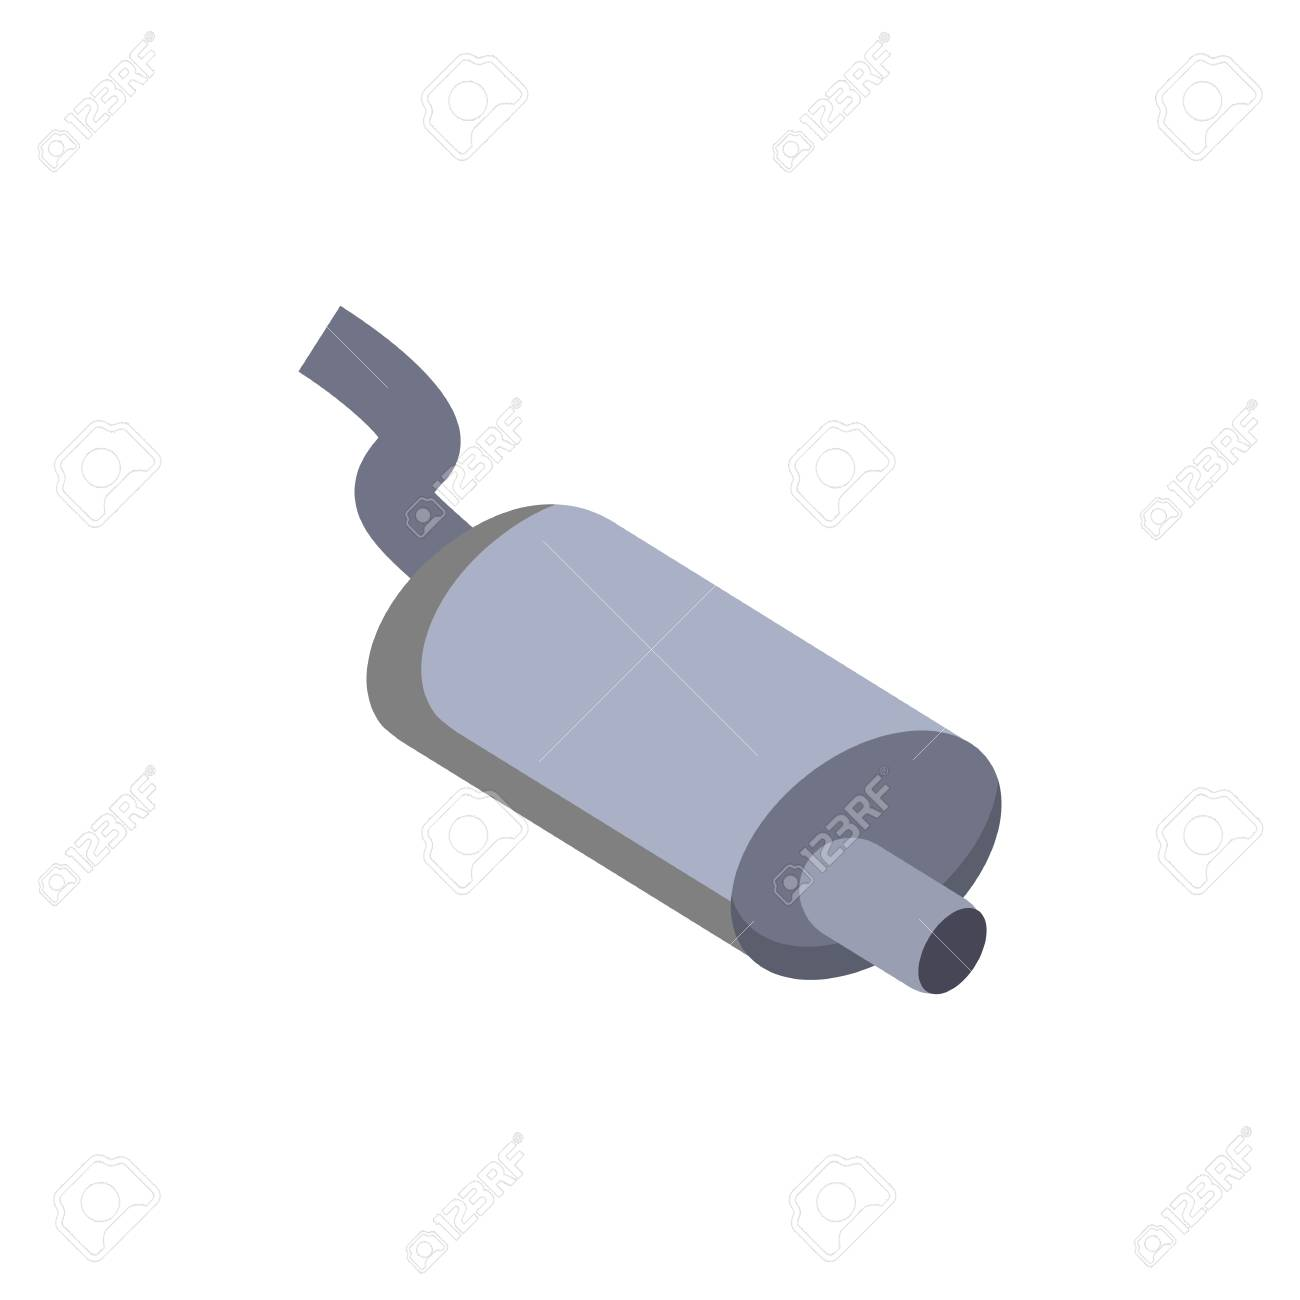 Exhaust Sparepart And Car Logo Icon Design Royalty Free Cliparts Vectors And Stock Illustration Image 106766513